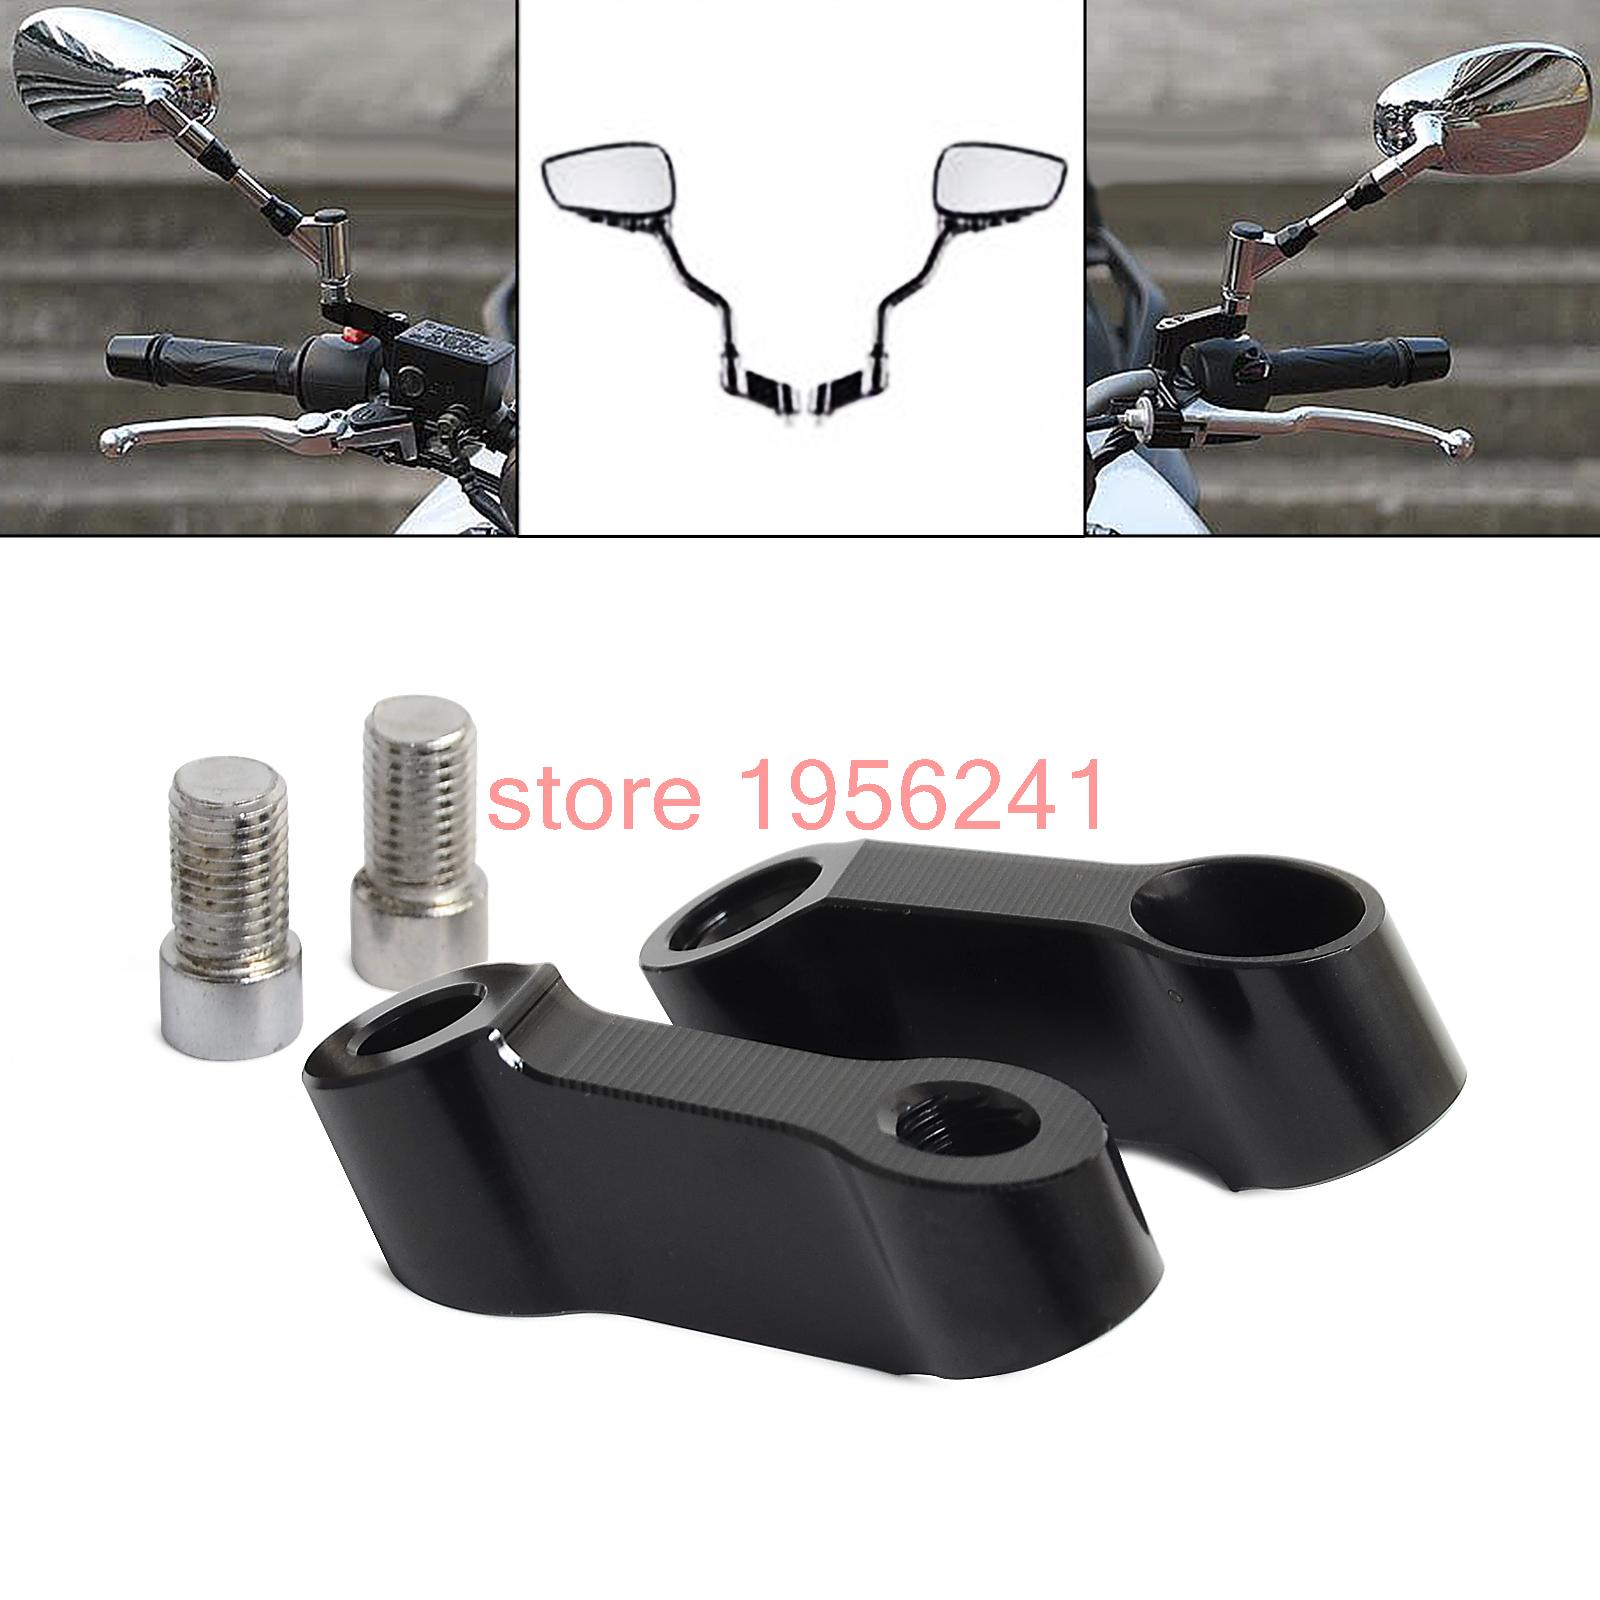 Pair Motorcycle Mirror Adapters LH 8mm Mount to RH 8mm Mirror Scooter Moped